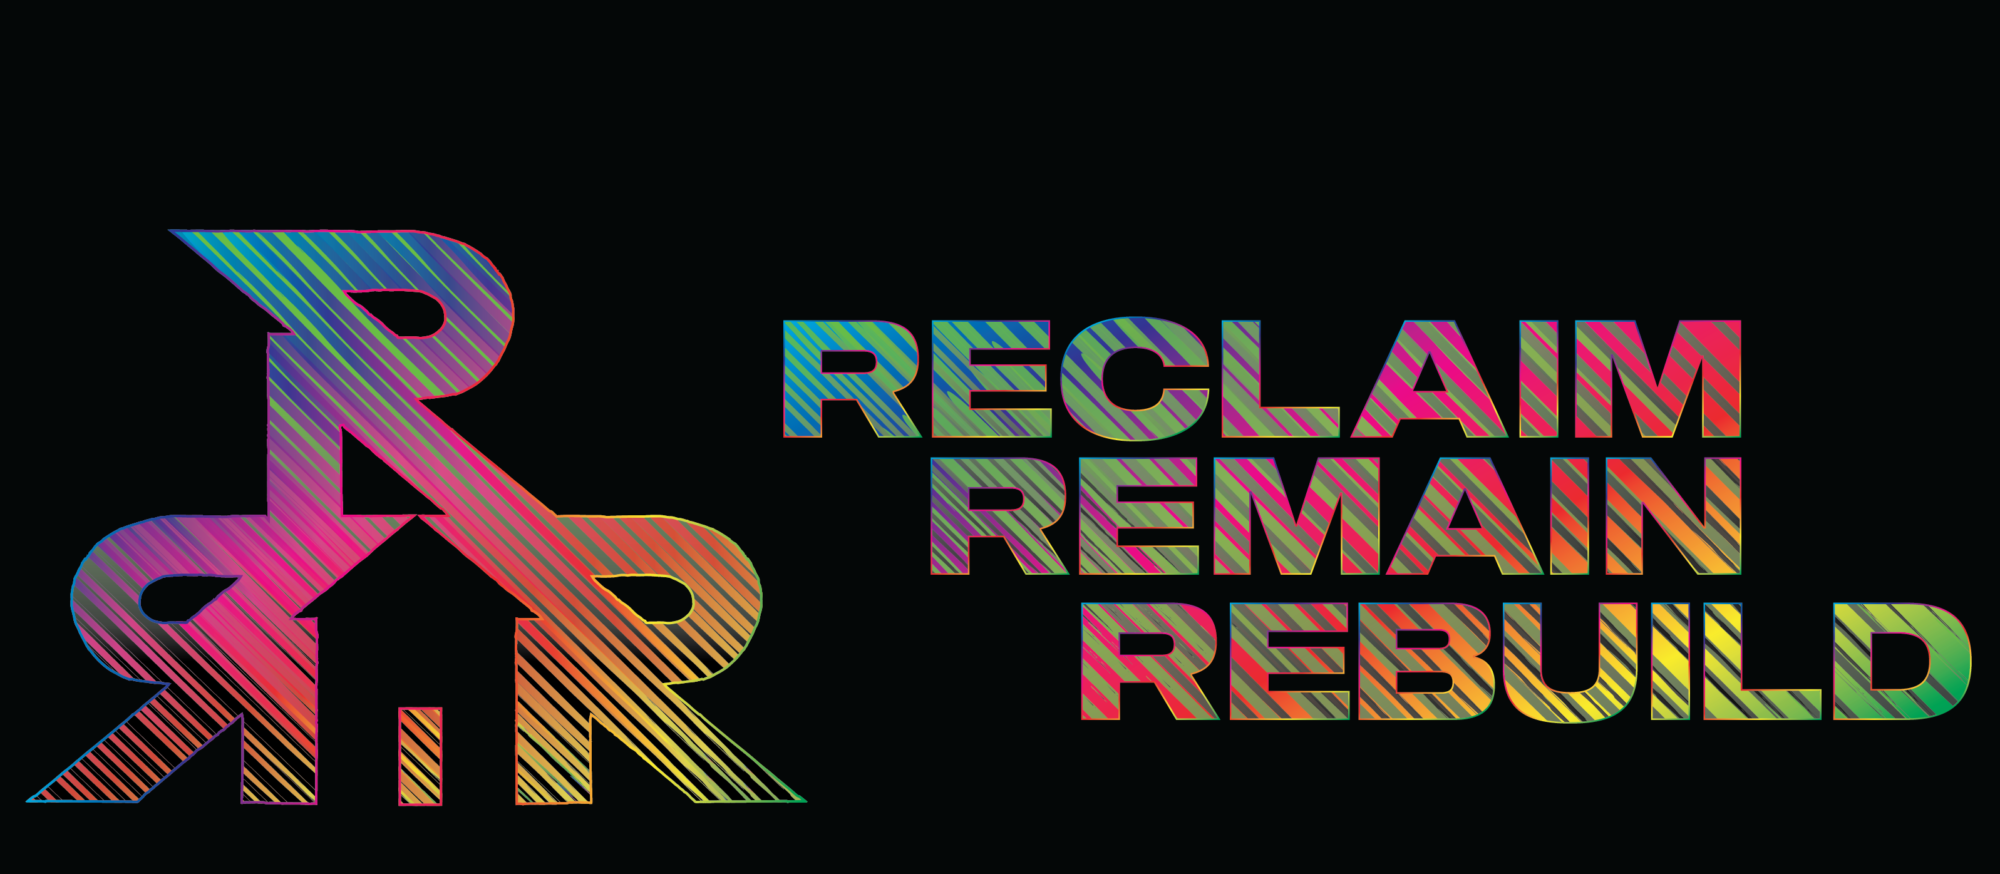 Reclaim, Remain, Rebuild